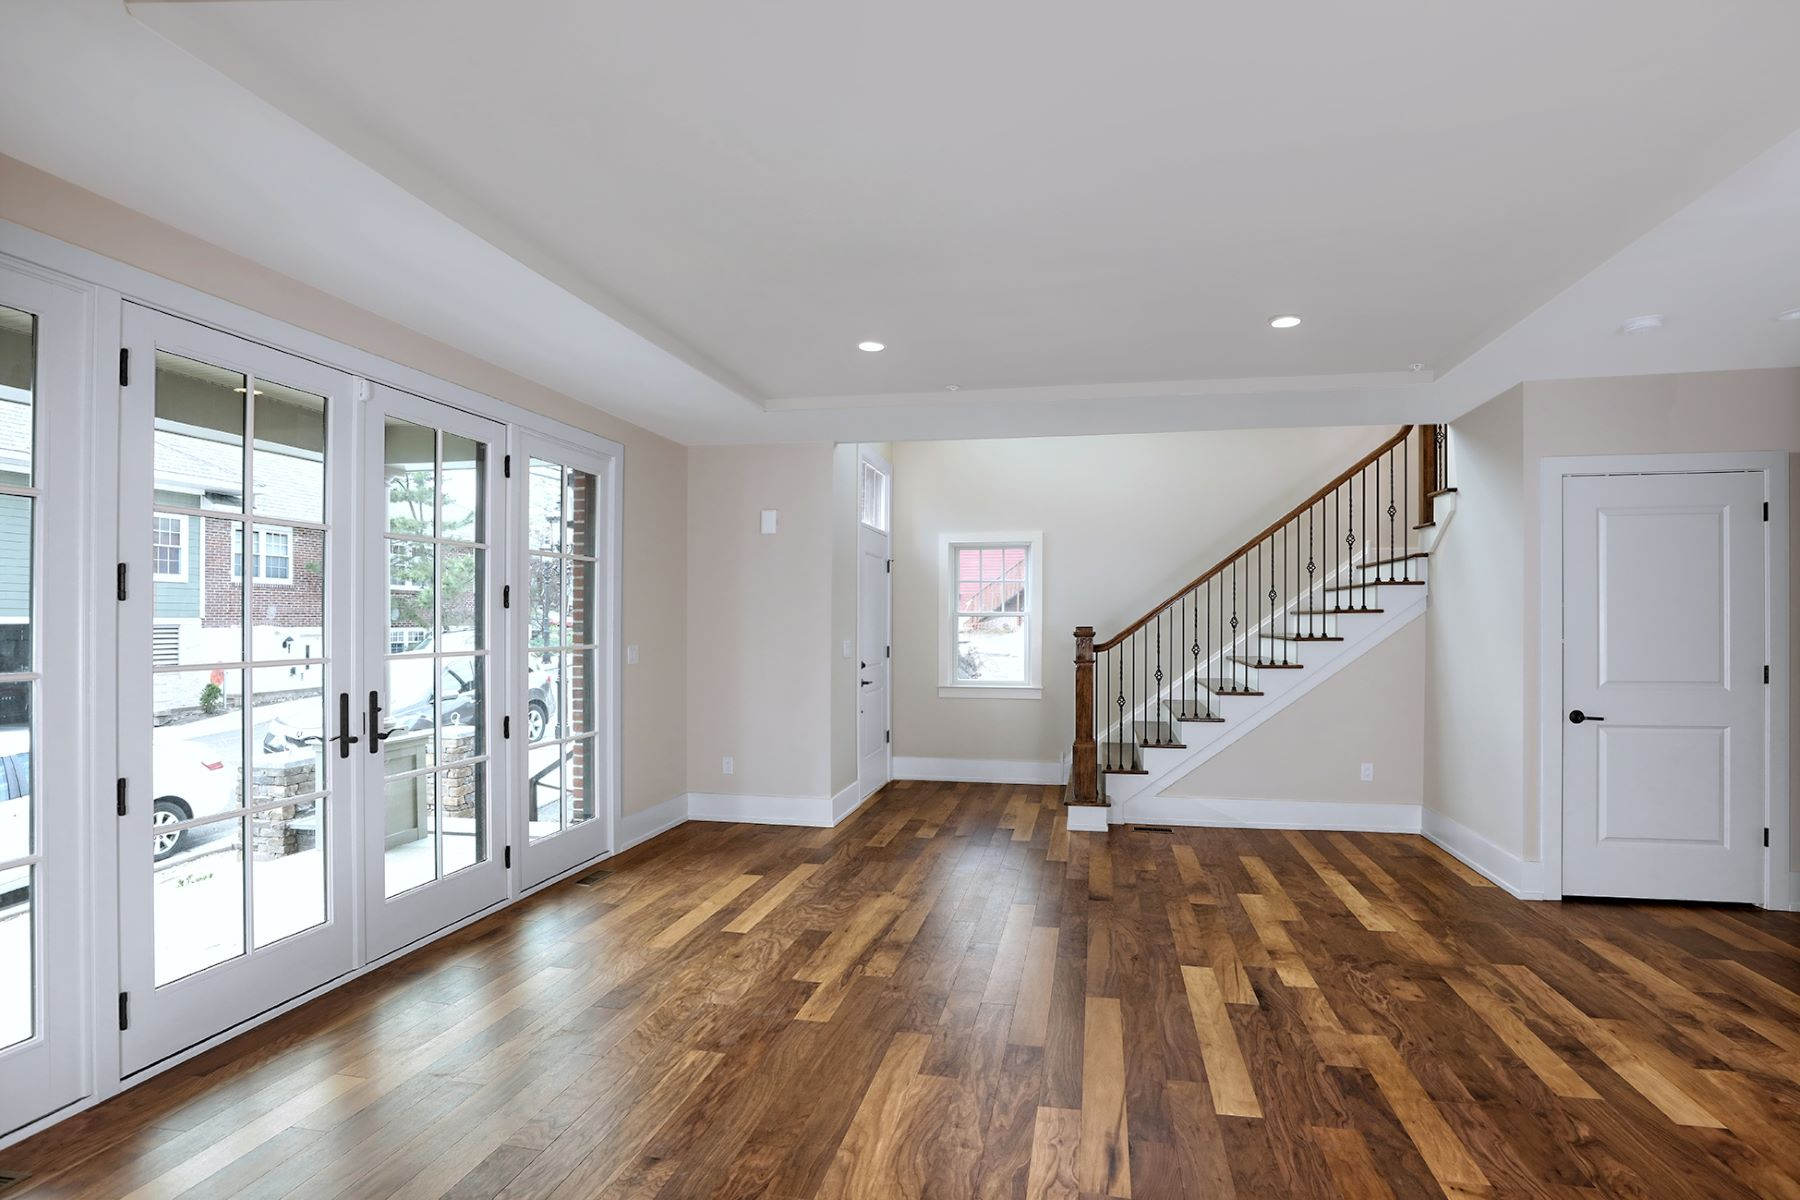 Additional photo for property listing at A Carefree Lifestyle and No Compromises 22 Riverwalk, Plainsboro, New Jersey 08536 United States